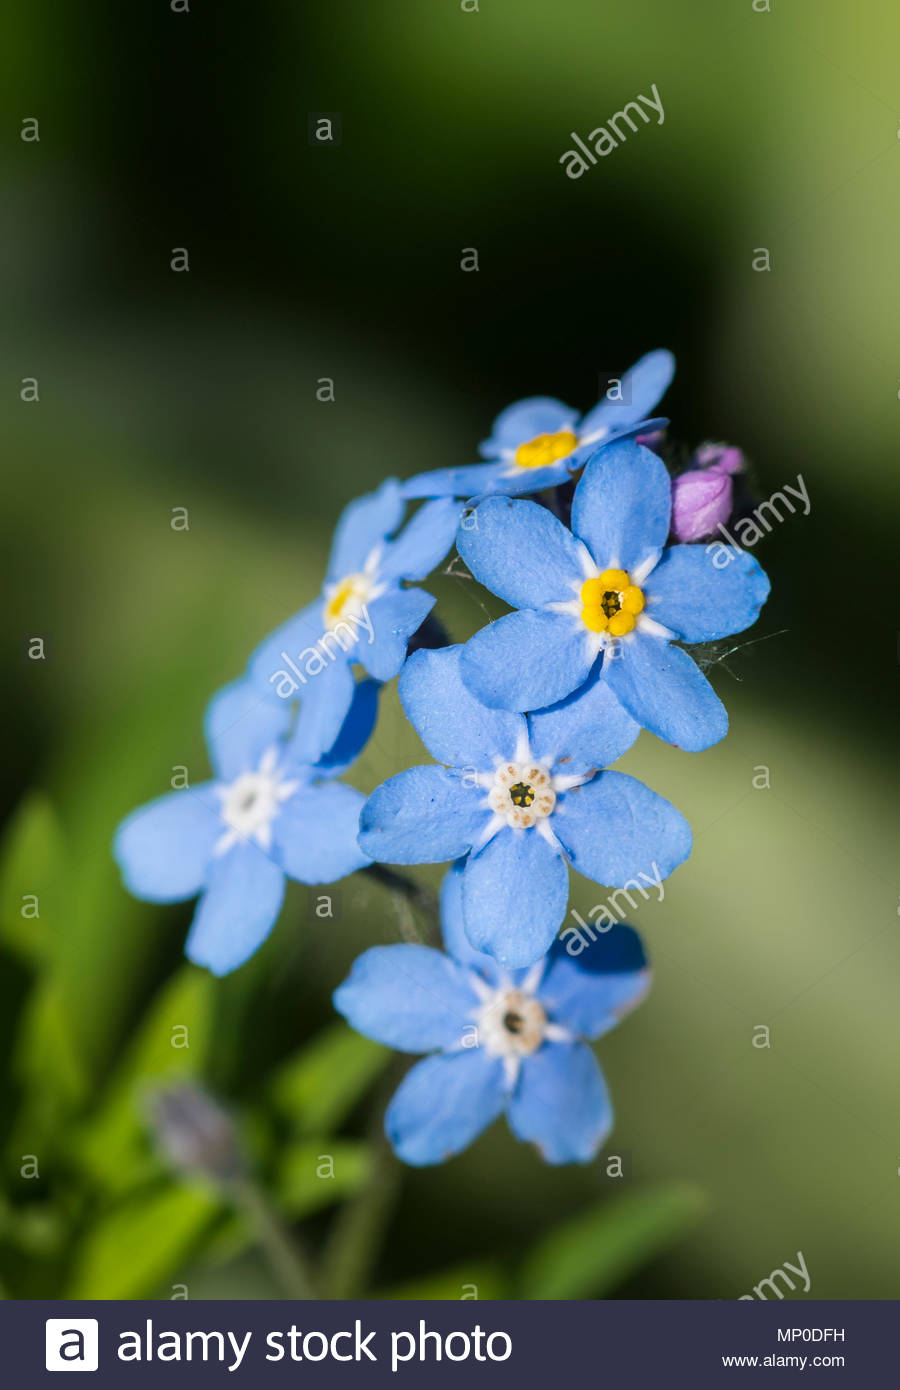 Forget me not small blue flowers from the genus myosotis flowering forget me not small blue flowers from the genus myosotis flowering in late spring in the uk blue forget me nots izmirmasajfo